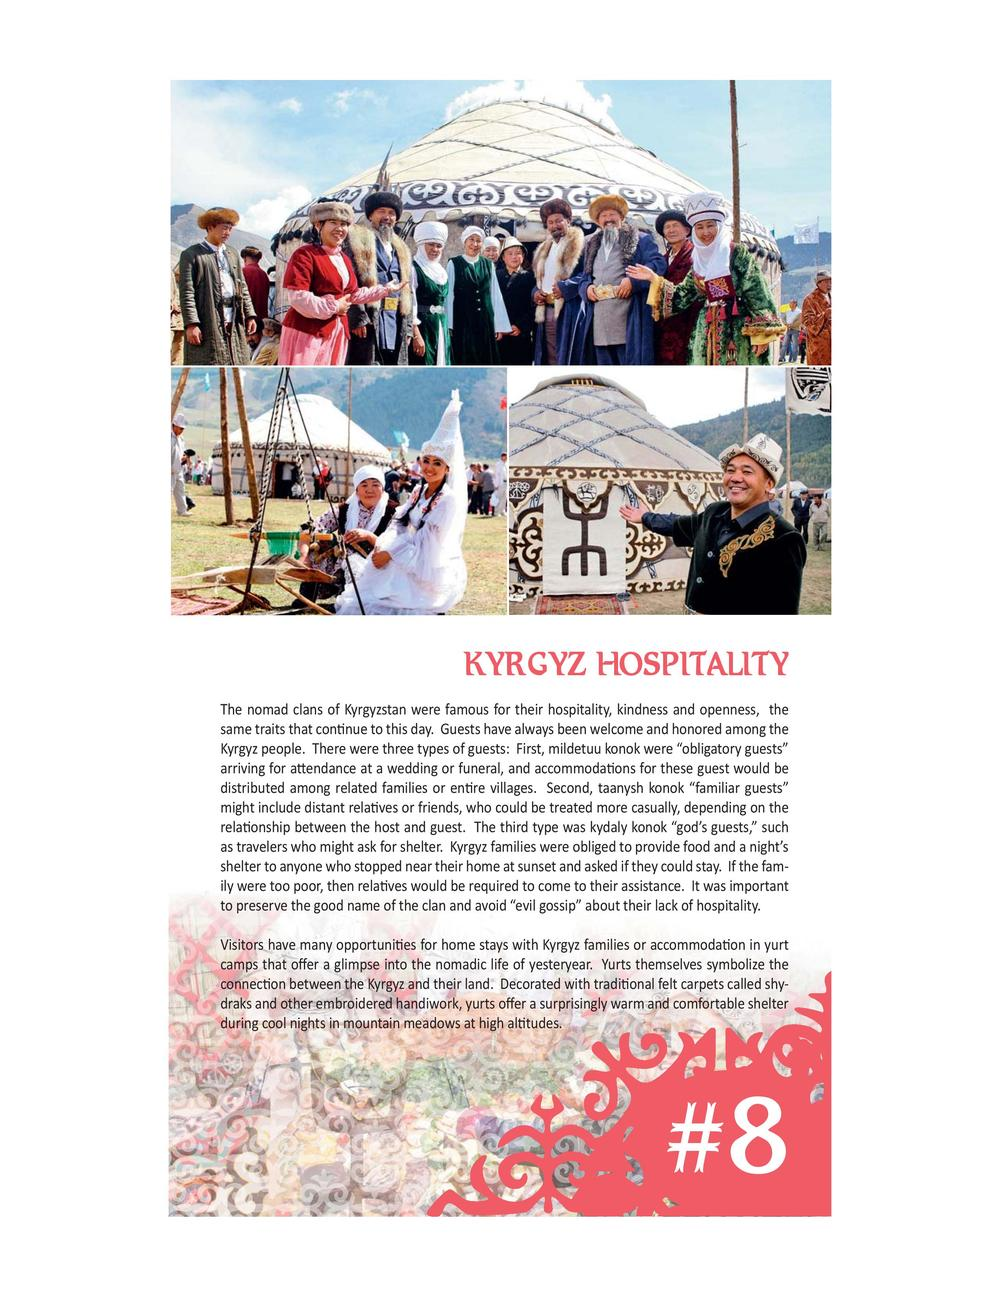 10 reasons to explore Kyrgyzstan_SMALL-page-009.jpg